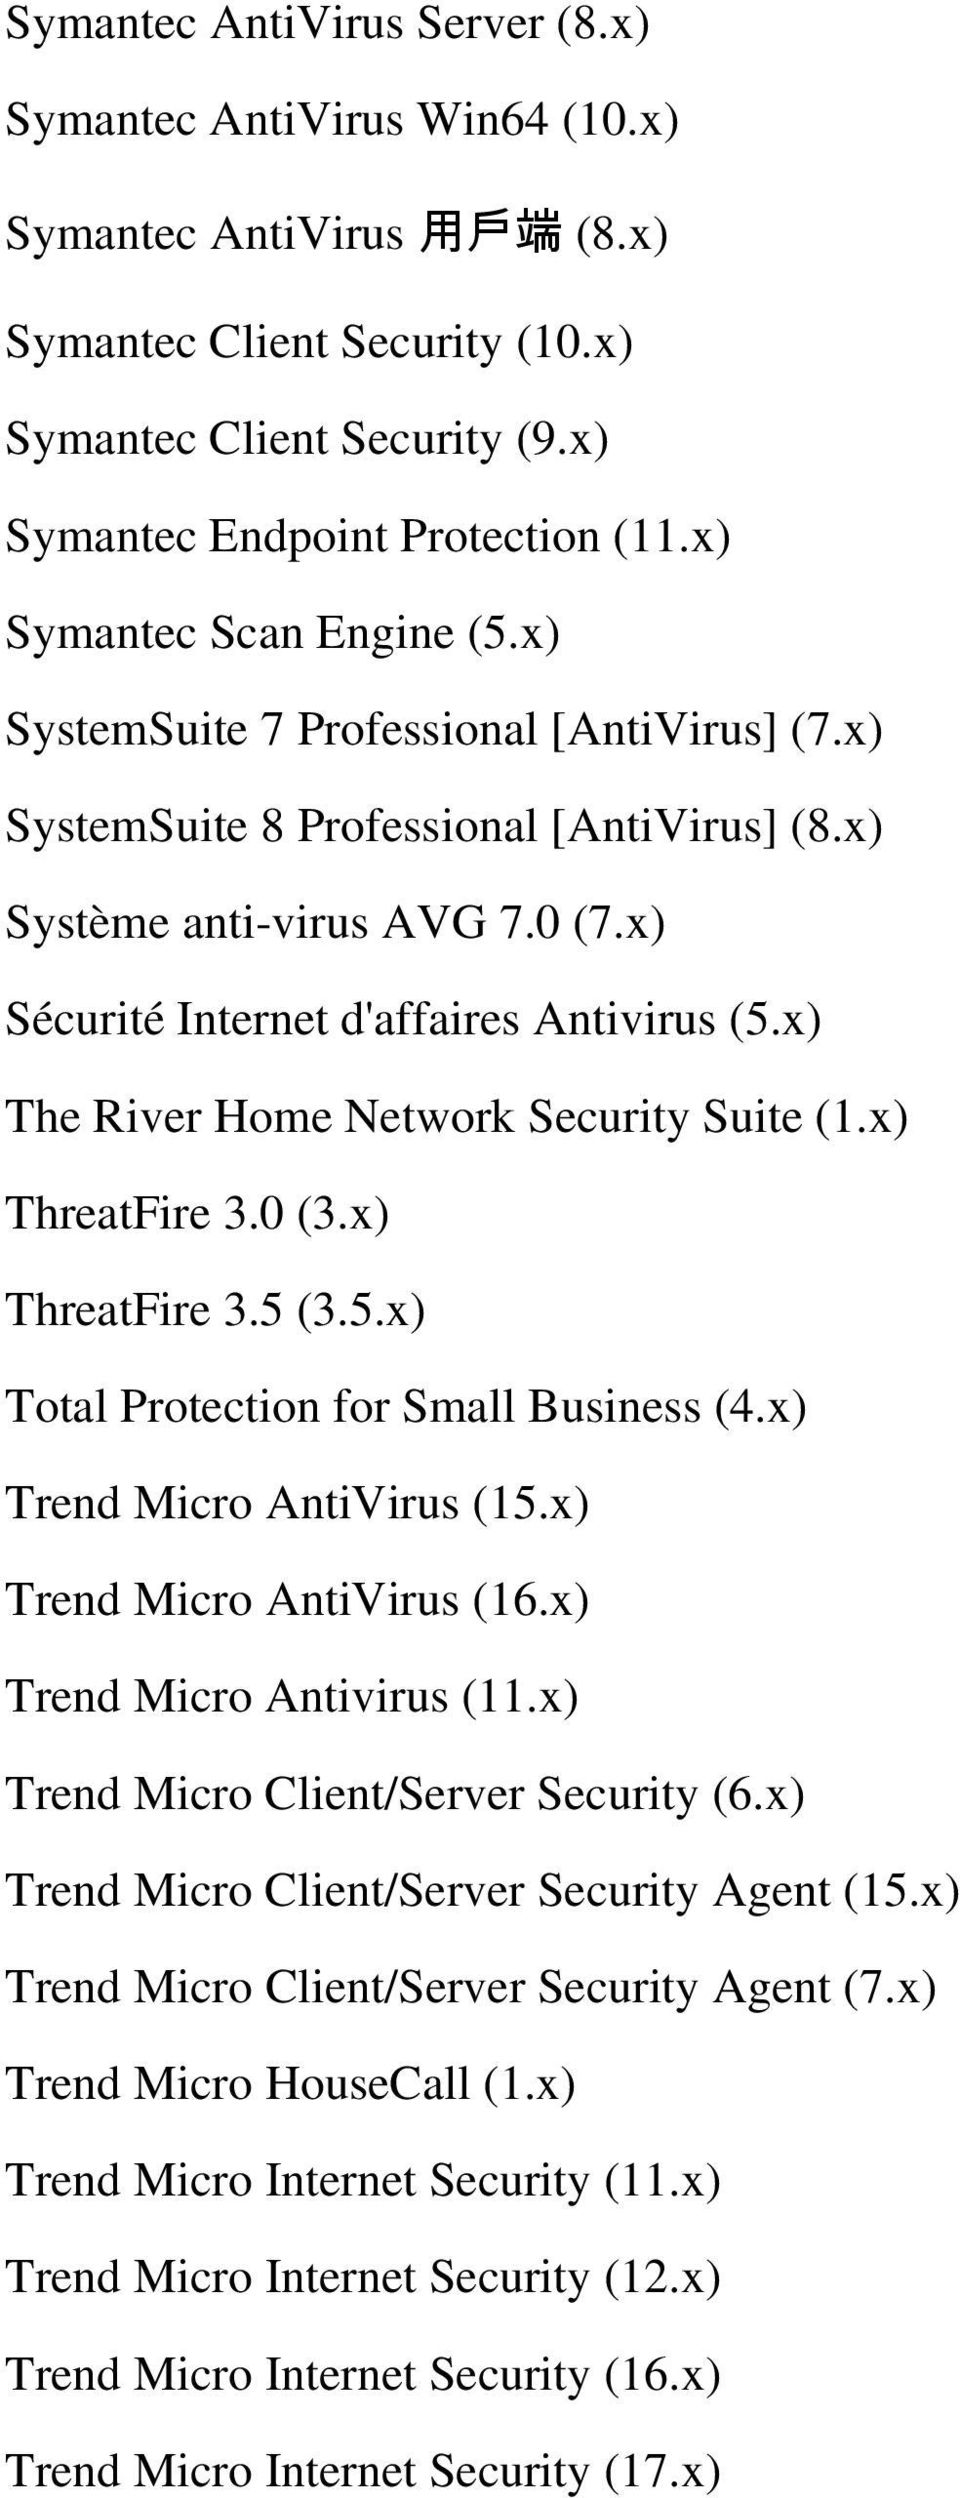 x) The River Home Network Security Suite (1.x) ThreatFire 3.0 (3.x) ThreatFire 3.5 (3.5.x) Total Protection for Small Business (4.x) Trend Micro AntiVirus (15.x) Trend Micro AntiVirus (16.